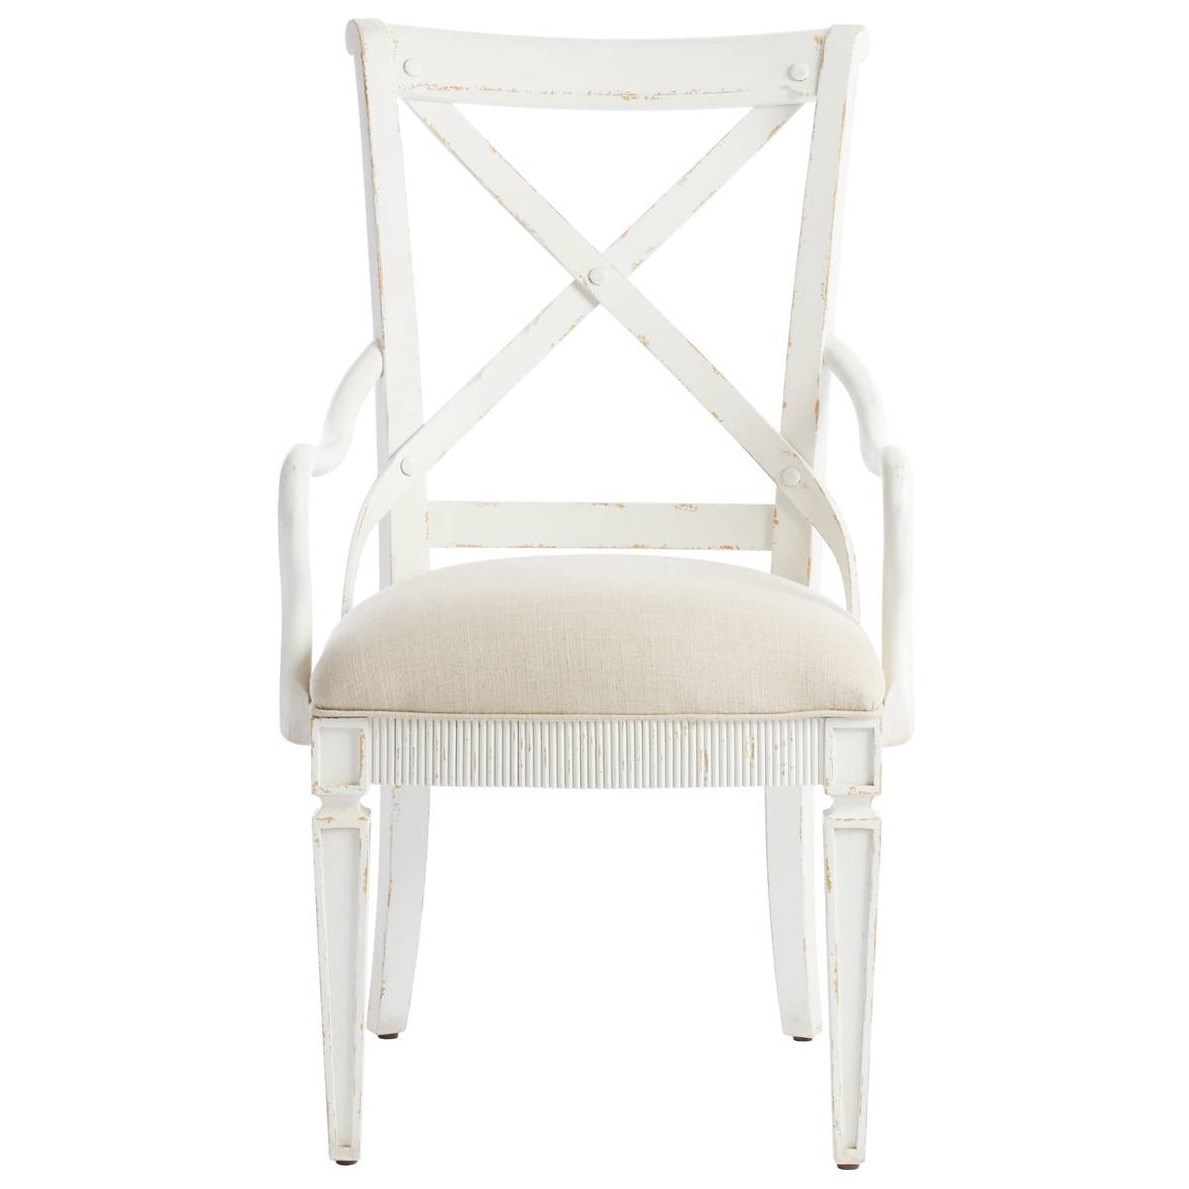 Stanley Furniture Juniper Dell 615 21 70 Arm Chair With